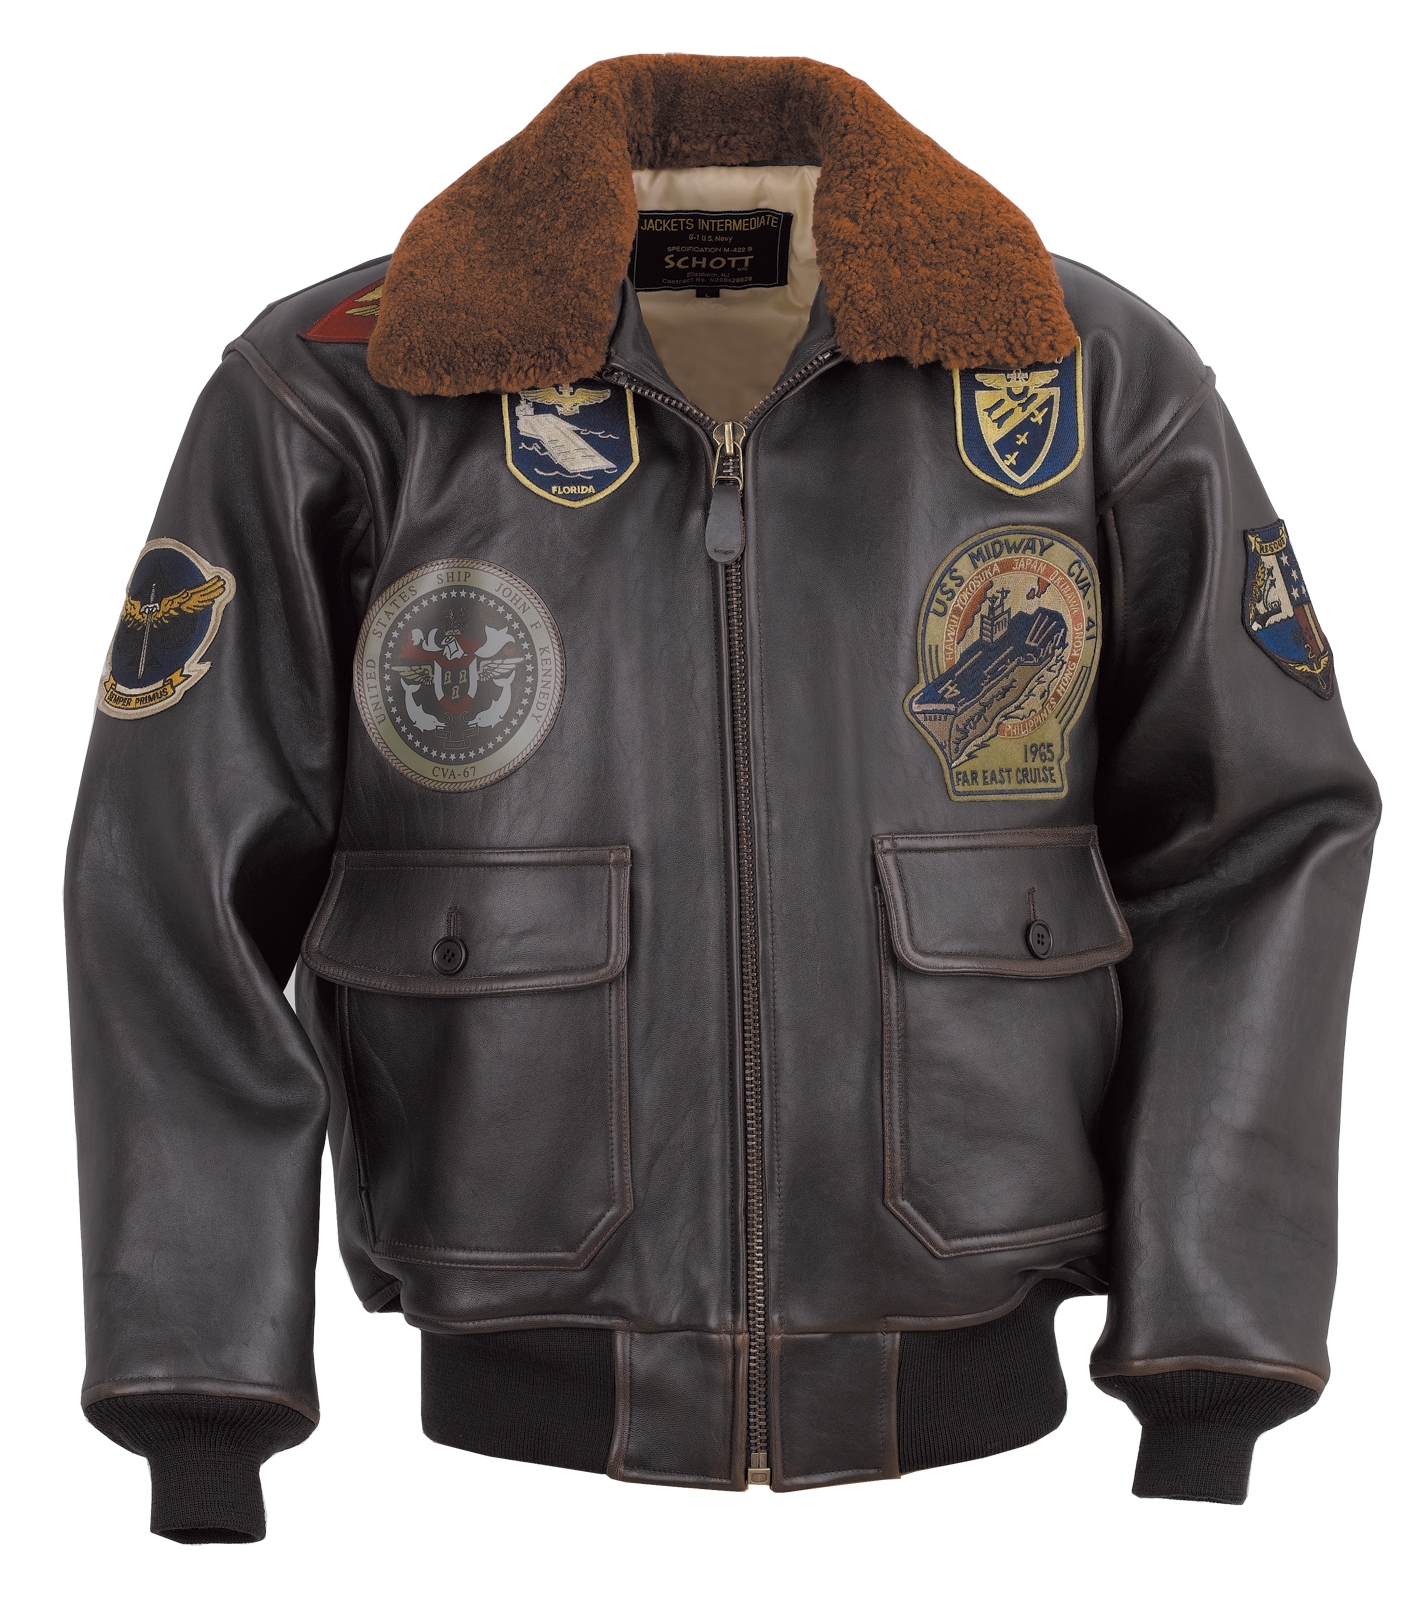 Schott N.Y.C. G1TG G-1 Wings of Gold Leather Bomber Jacket